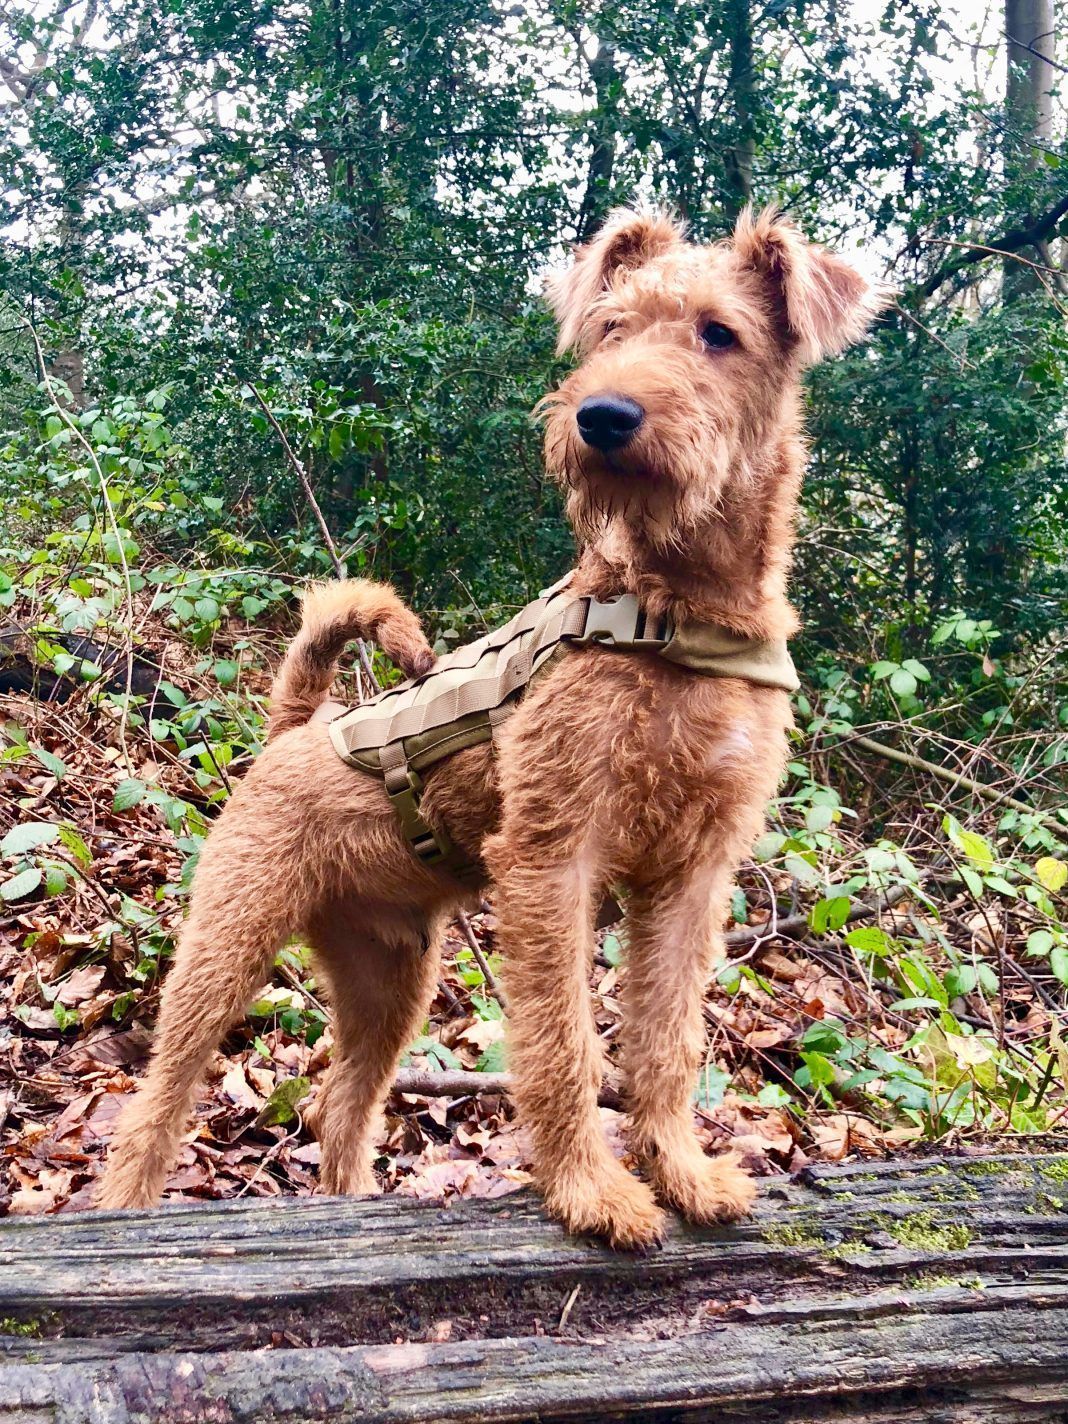 The Irish Terrier Is One Of The Top 10 Native Irish Dog Bree The Irish Terrier Is One Of The Top 10 Native Irish Dog Bree In 2020 Irish Dog Breeds Irish